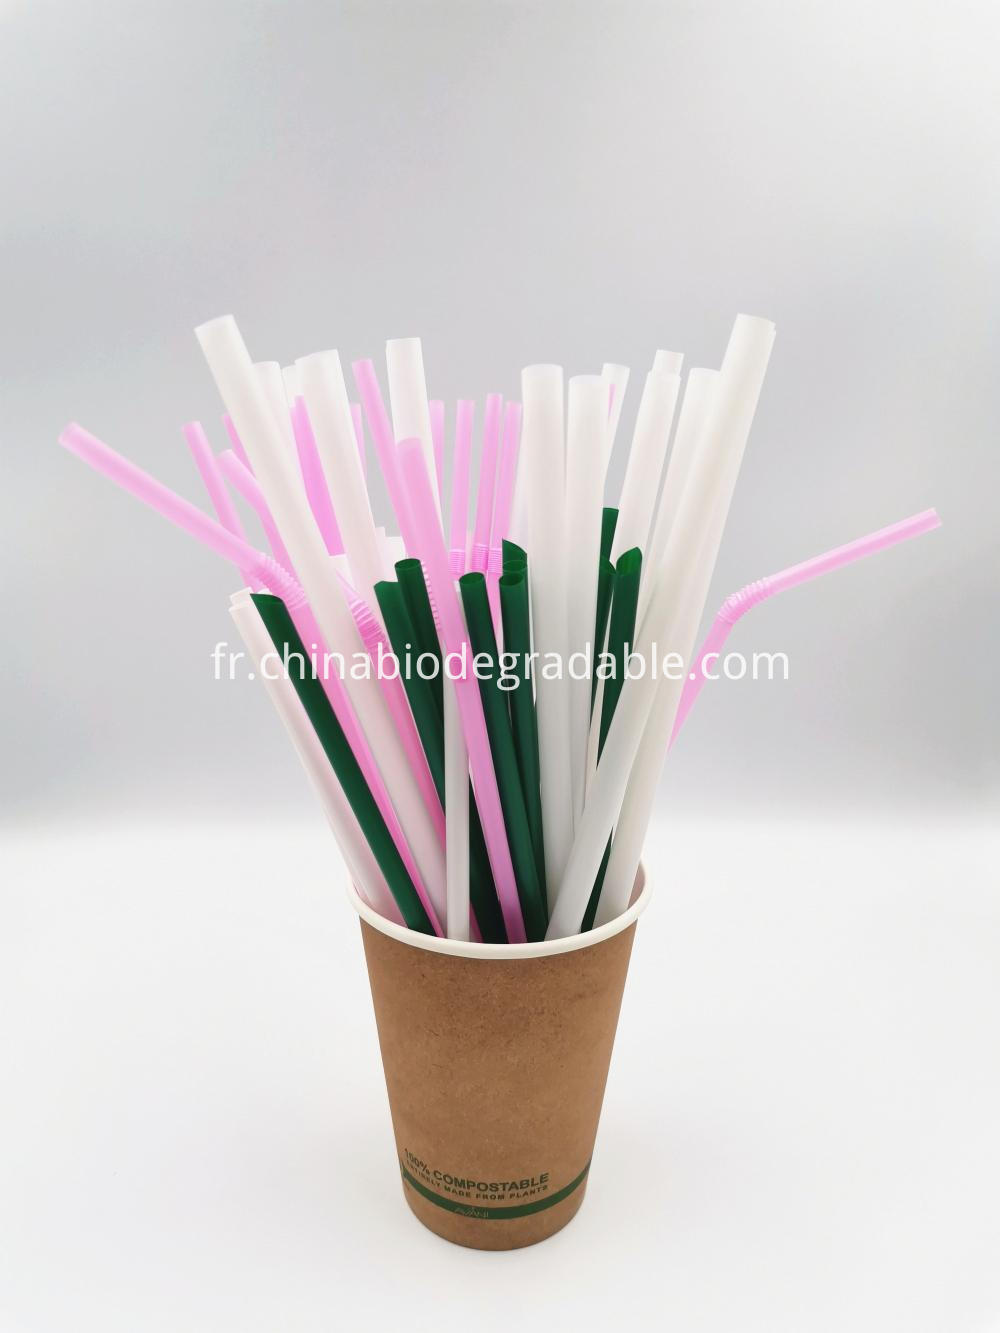 100% Compostable Natural Plant Flexible PLA Eco Straws